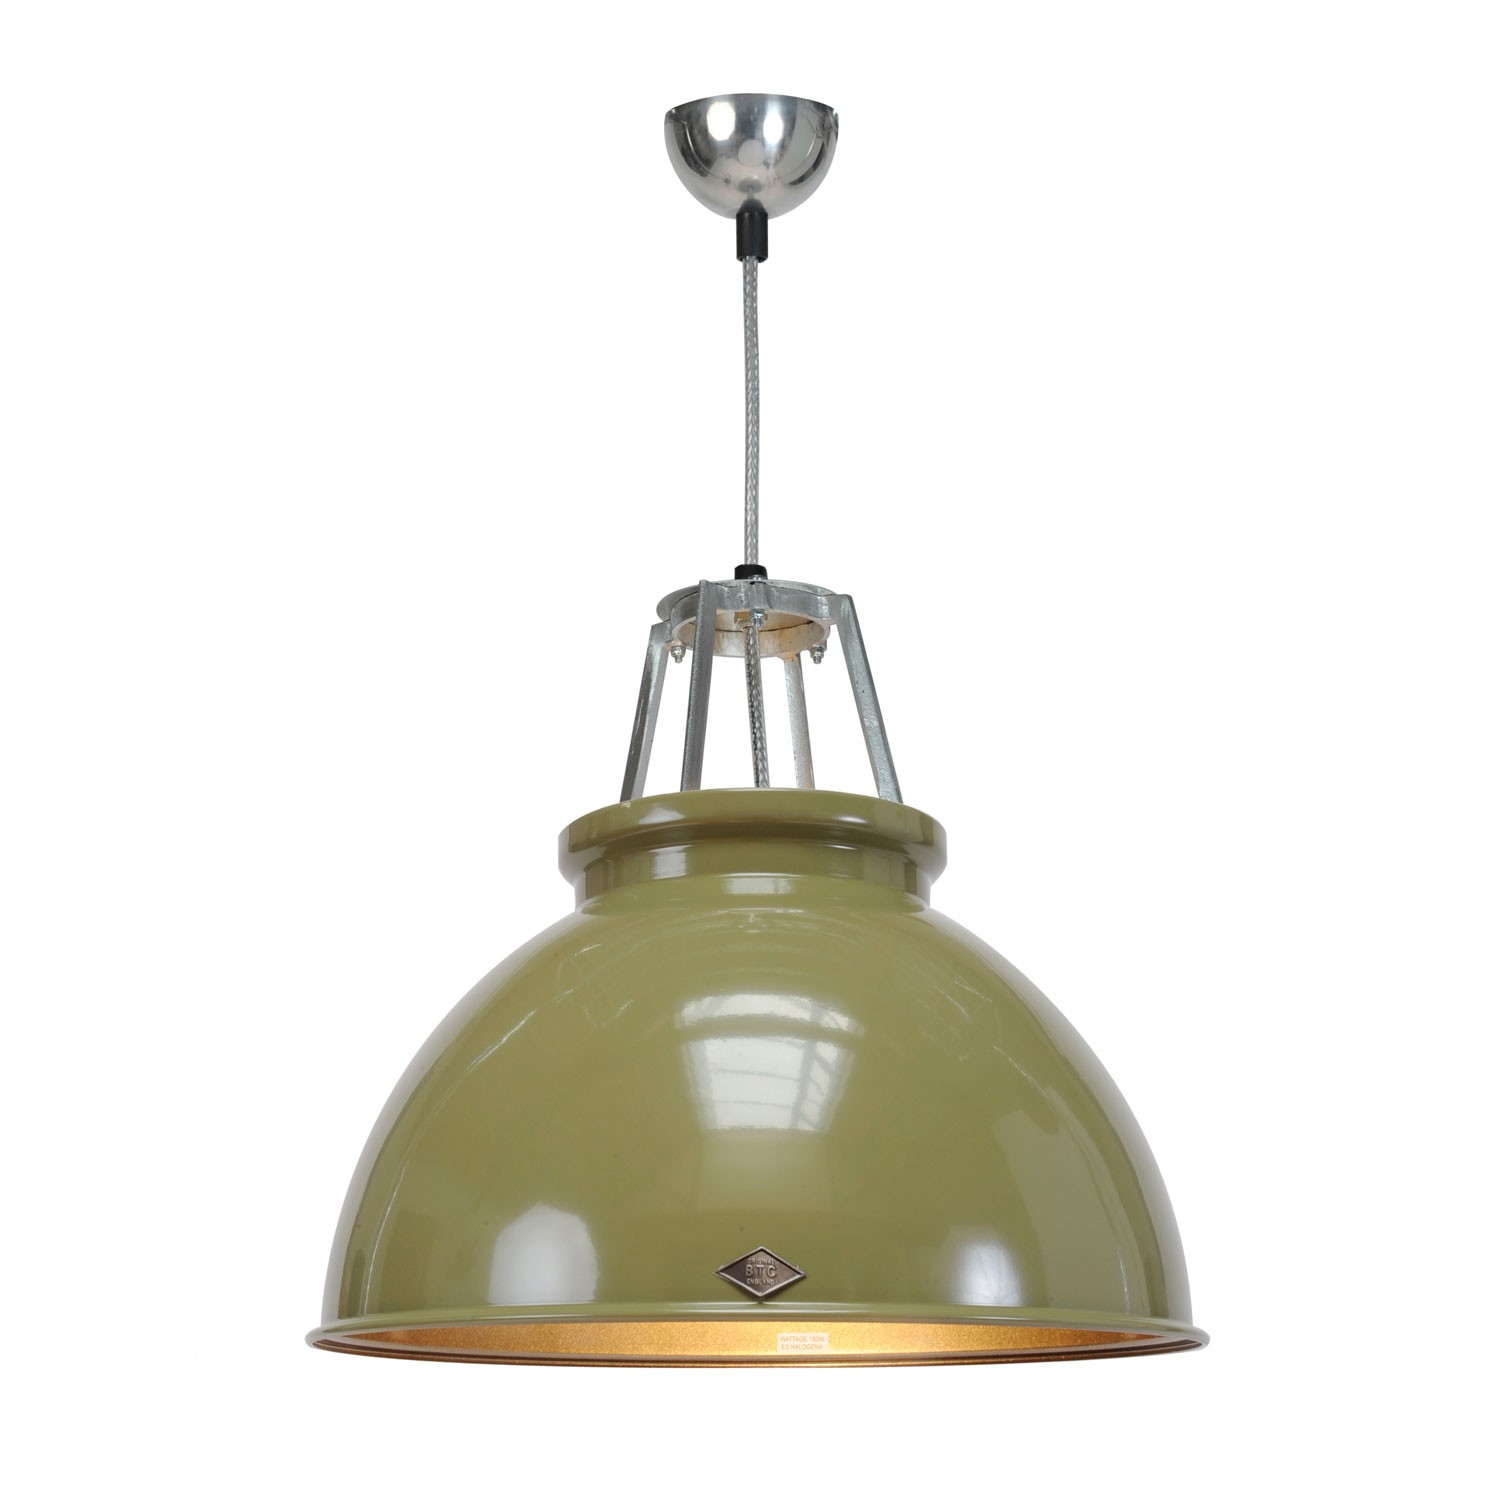 Titan Size 3 Pendant Light Olive Green with Bronze Interior